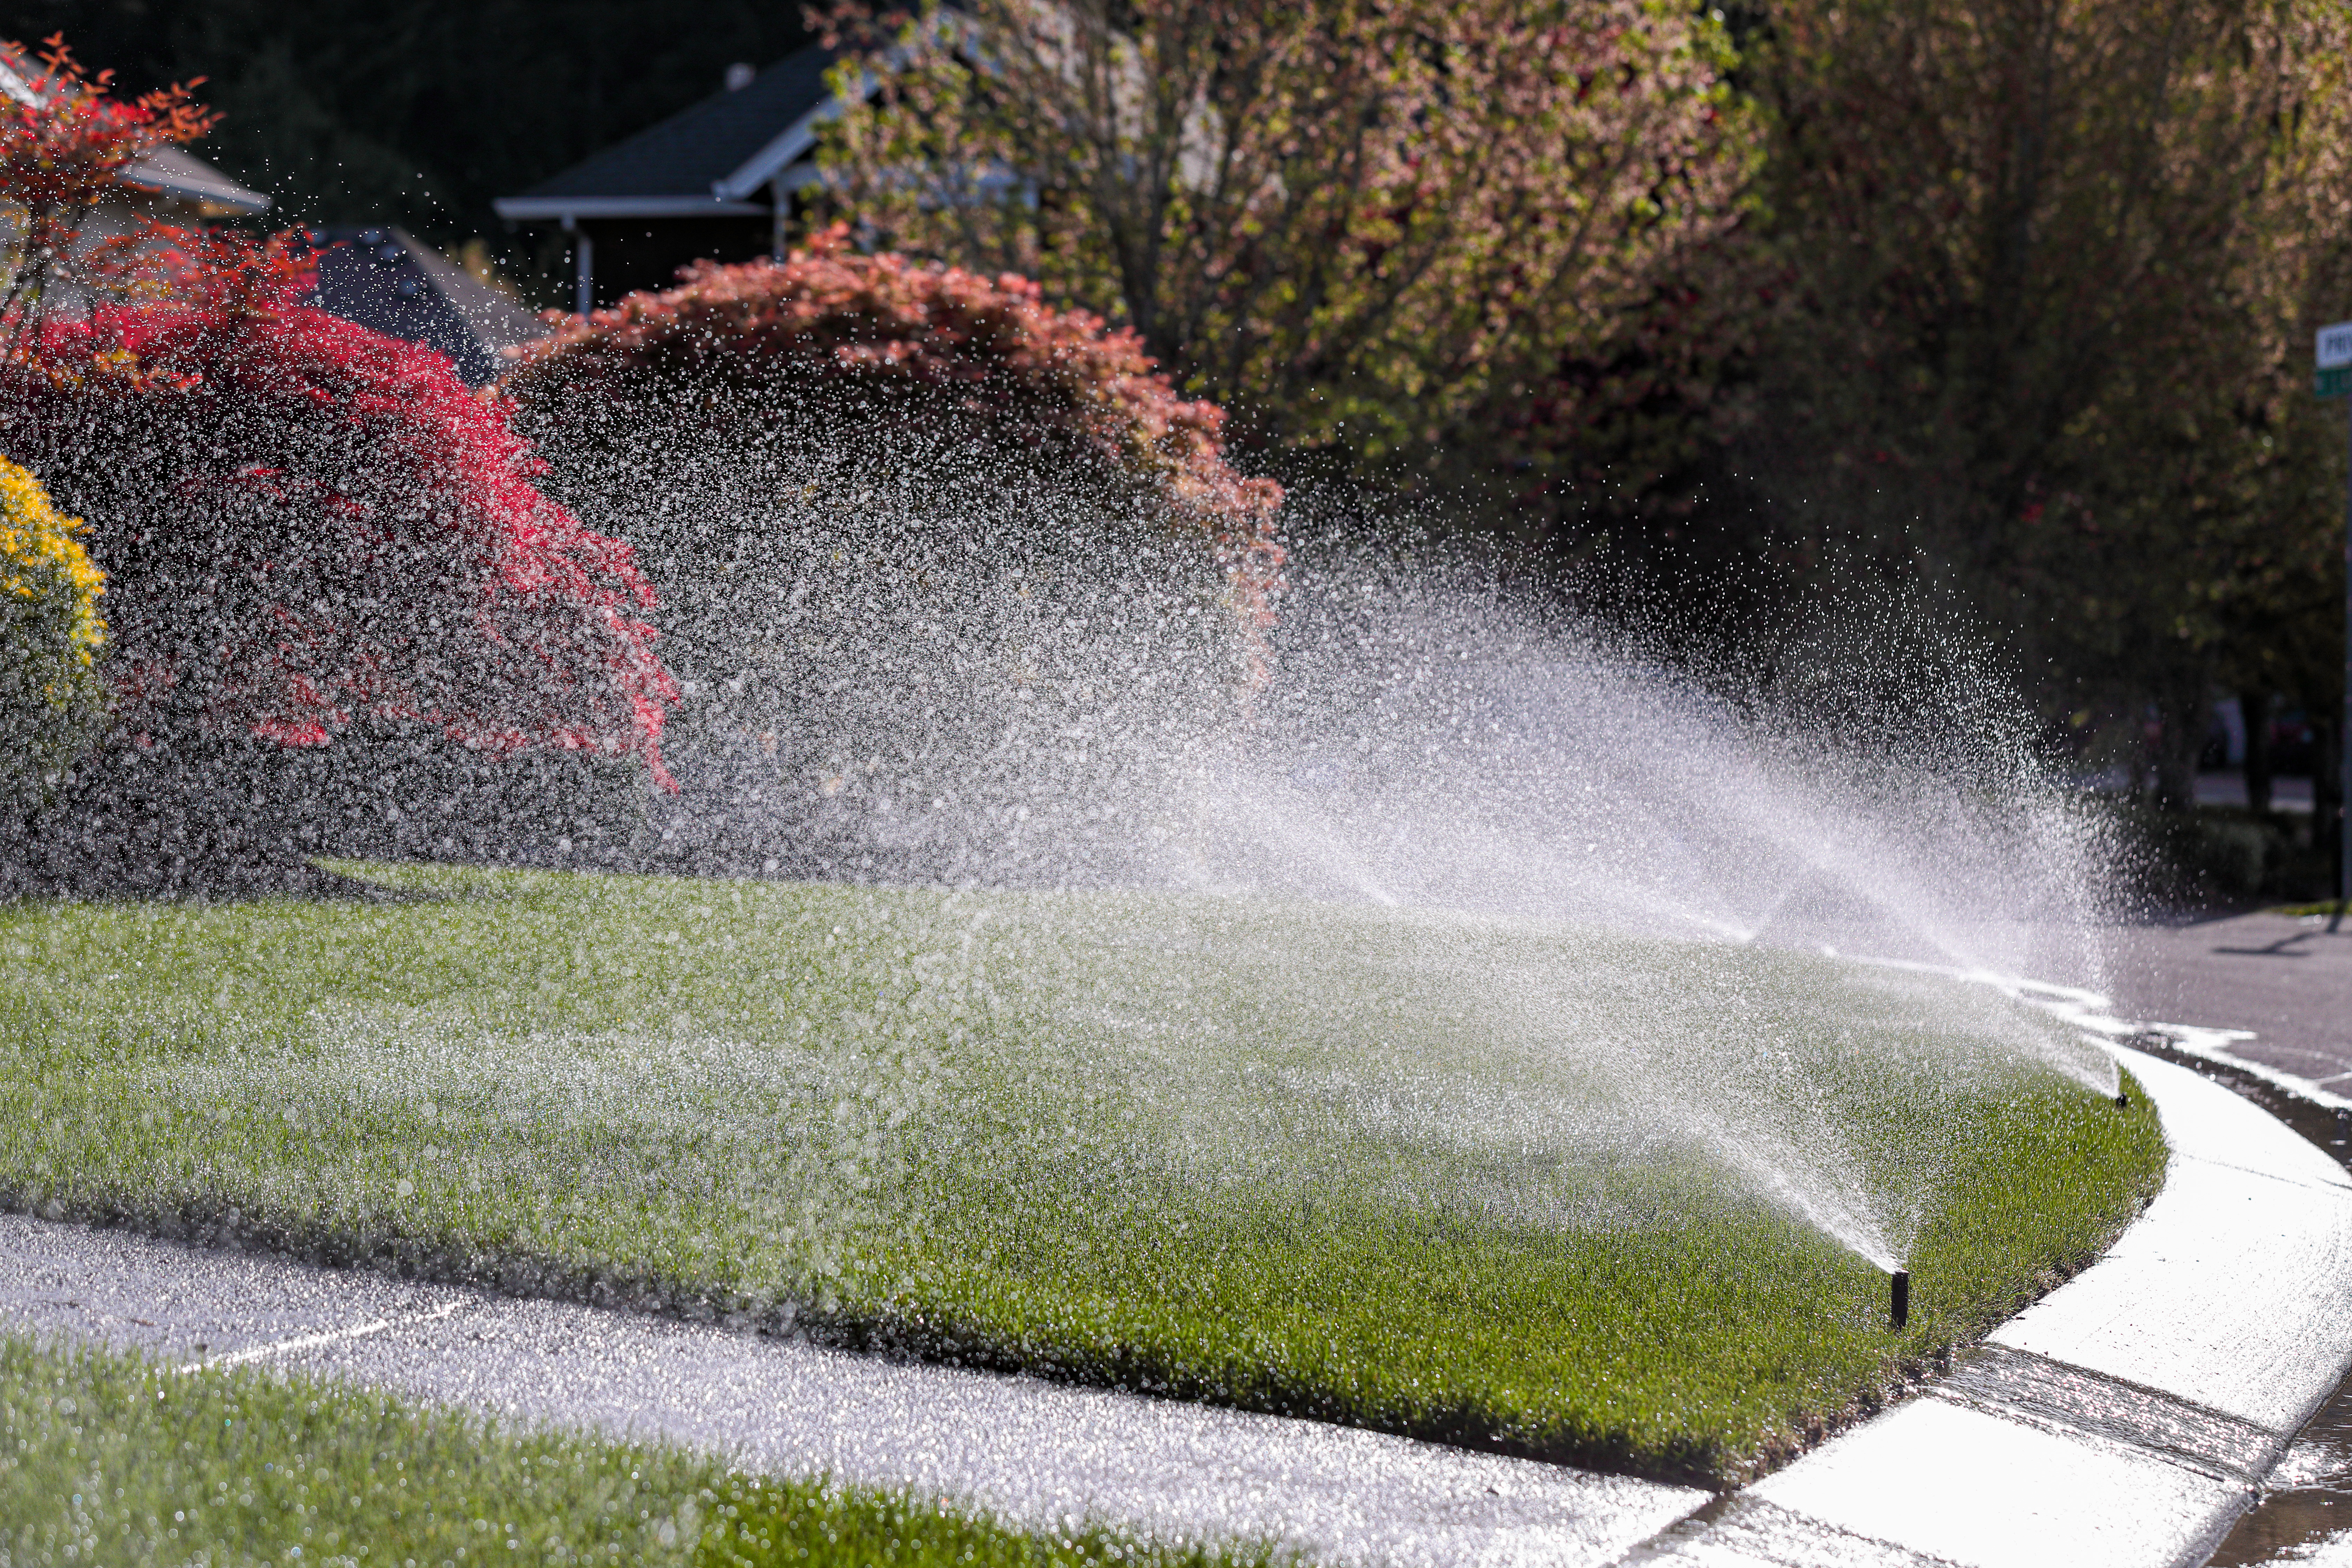 Sprinkling system going off on residential lawn